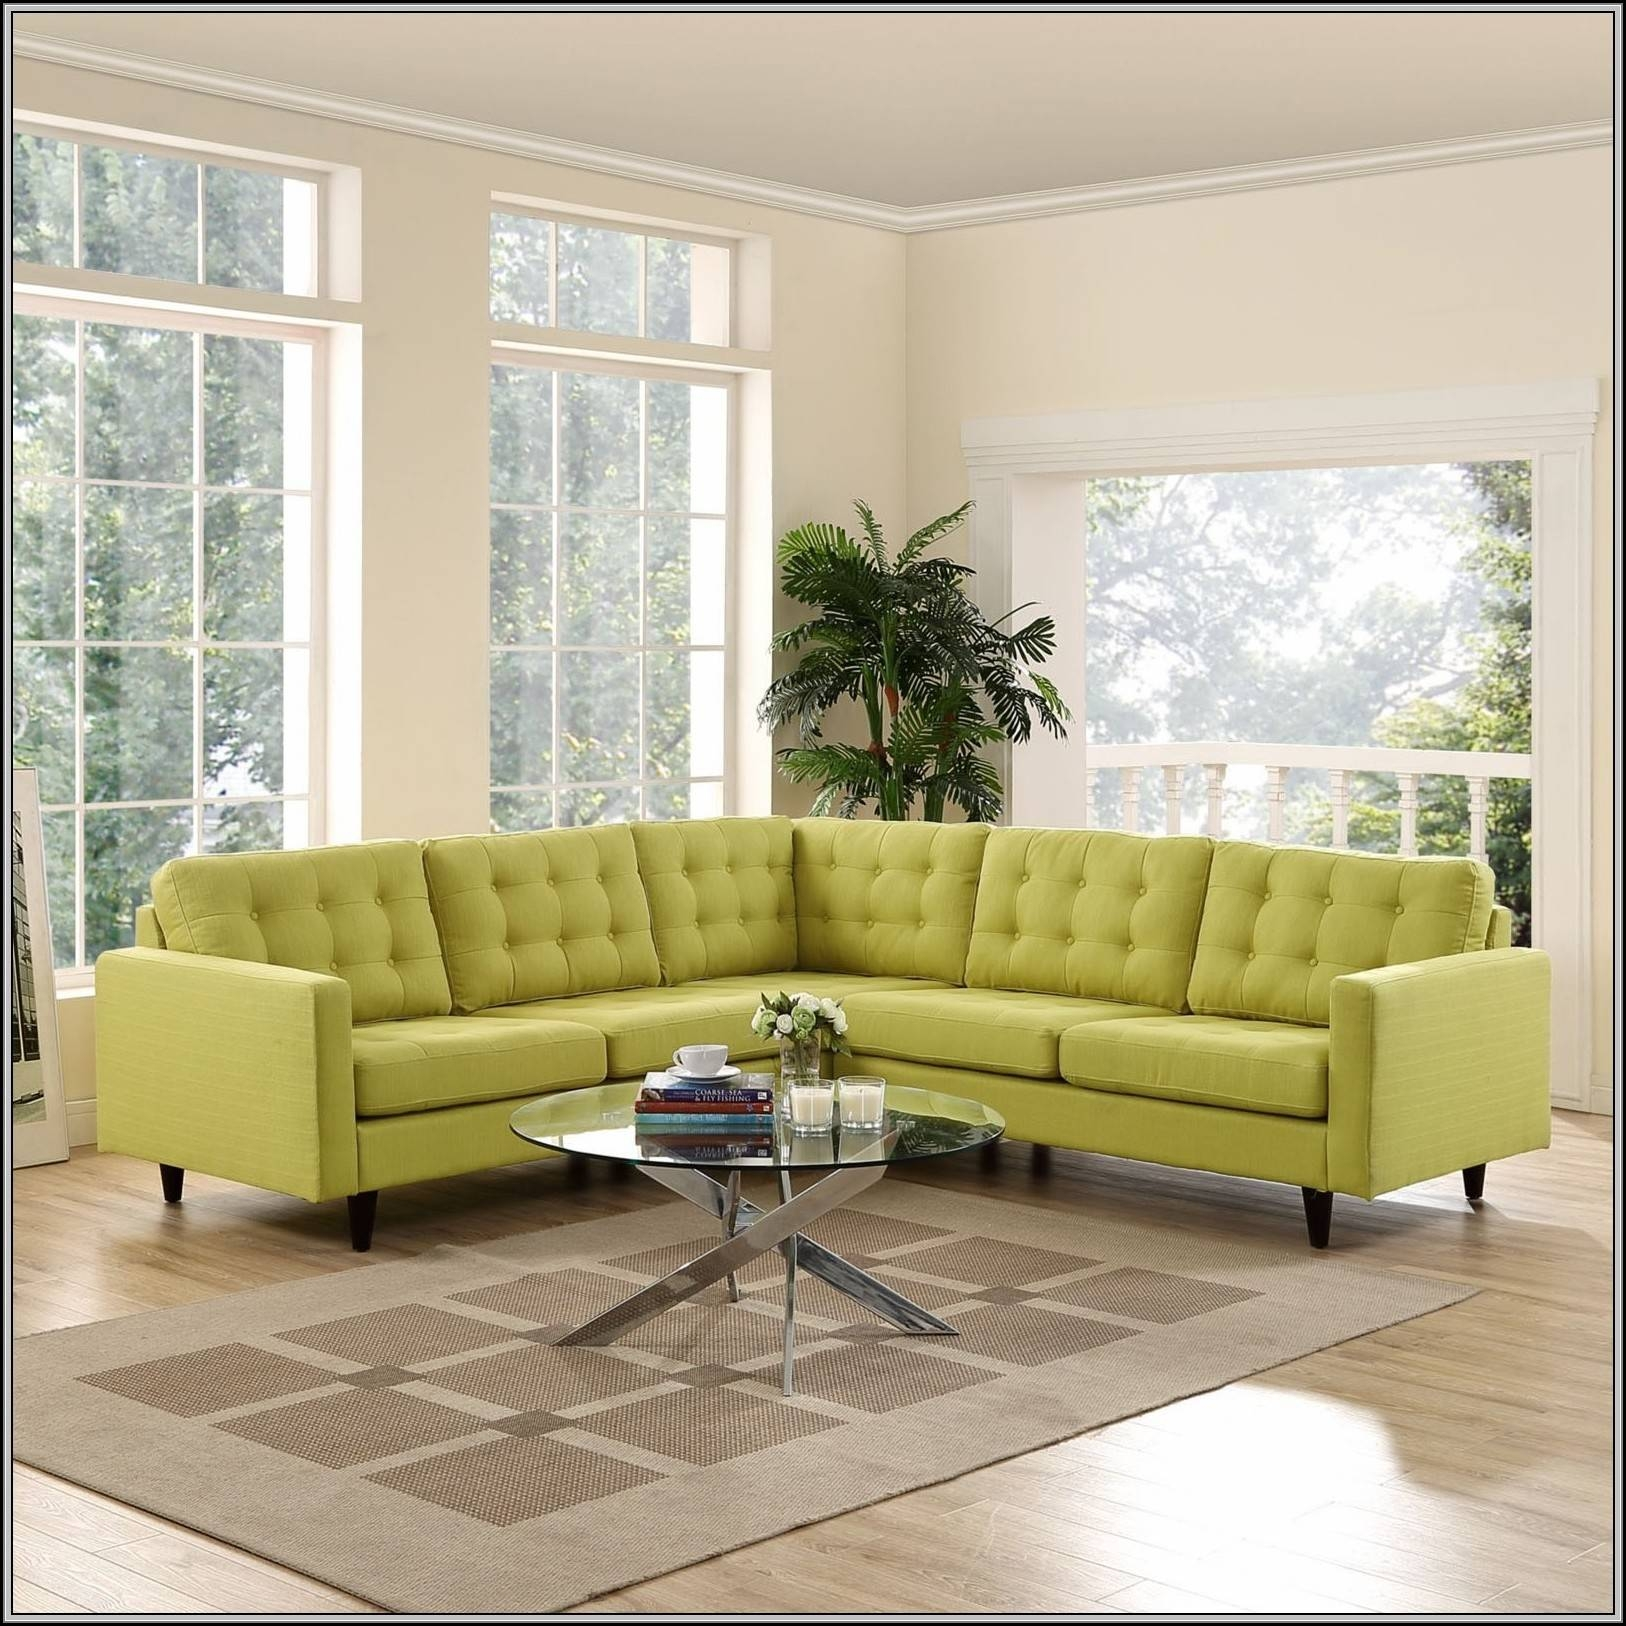 30 Ideas of 6 Piece Modular Sectional Sofa